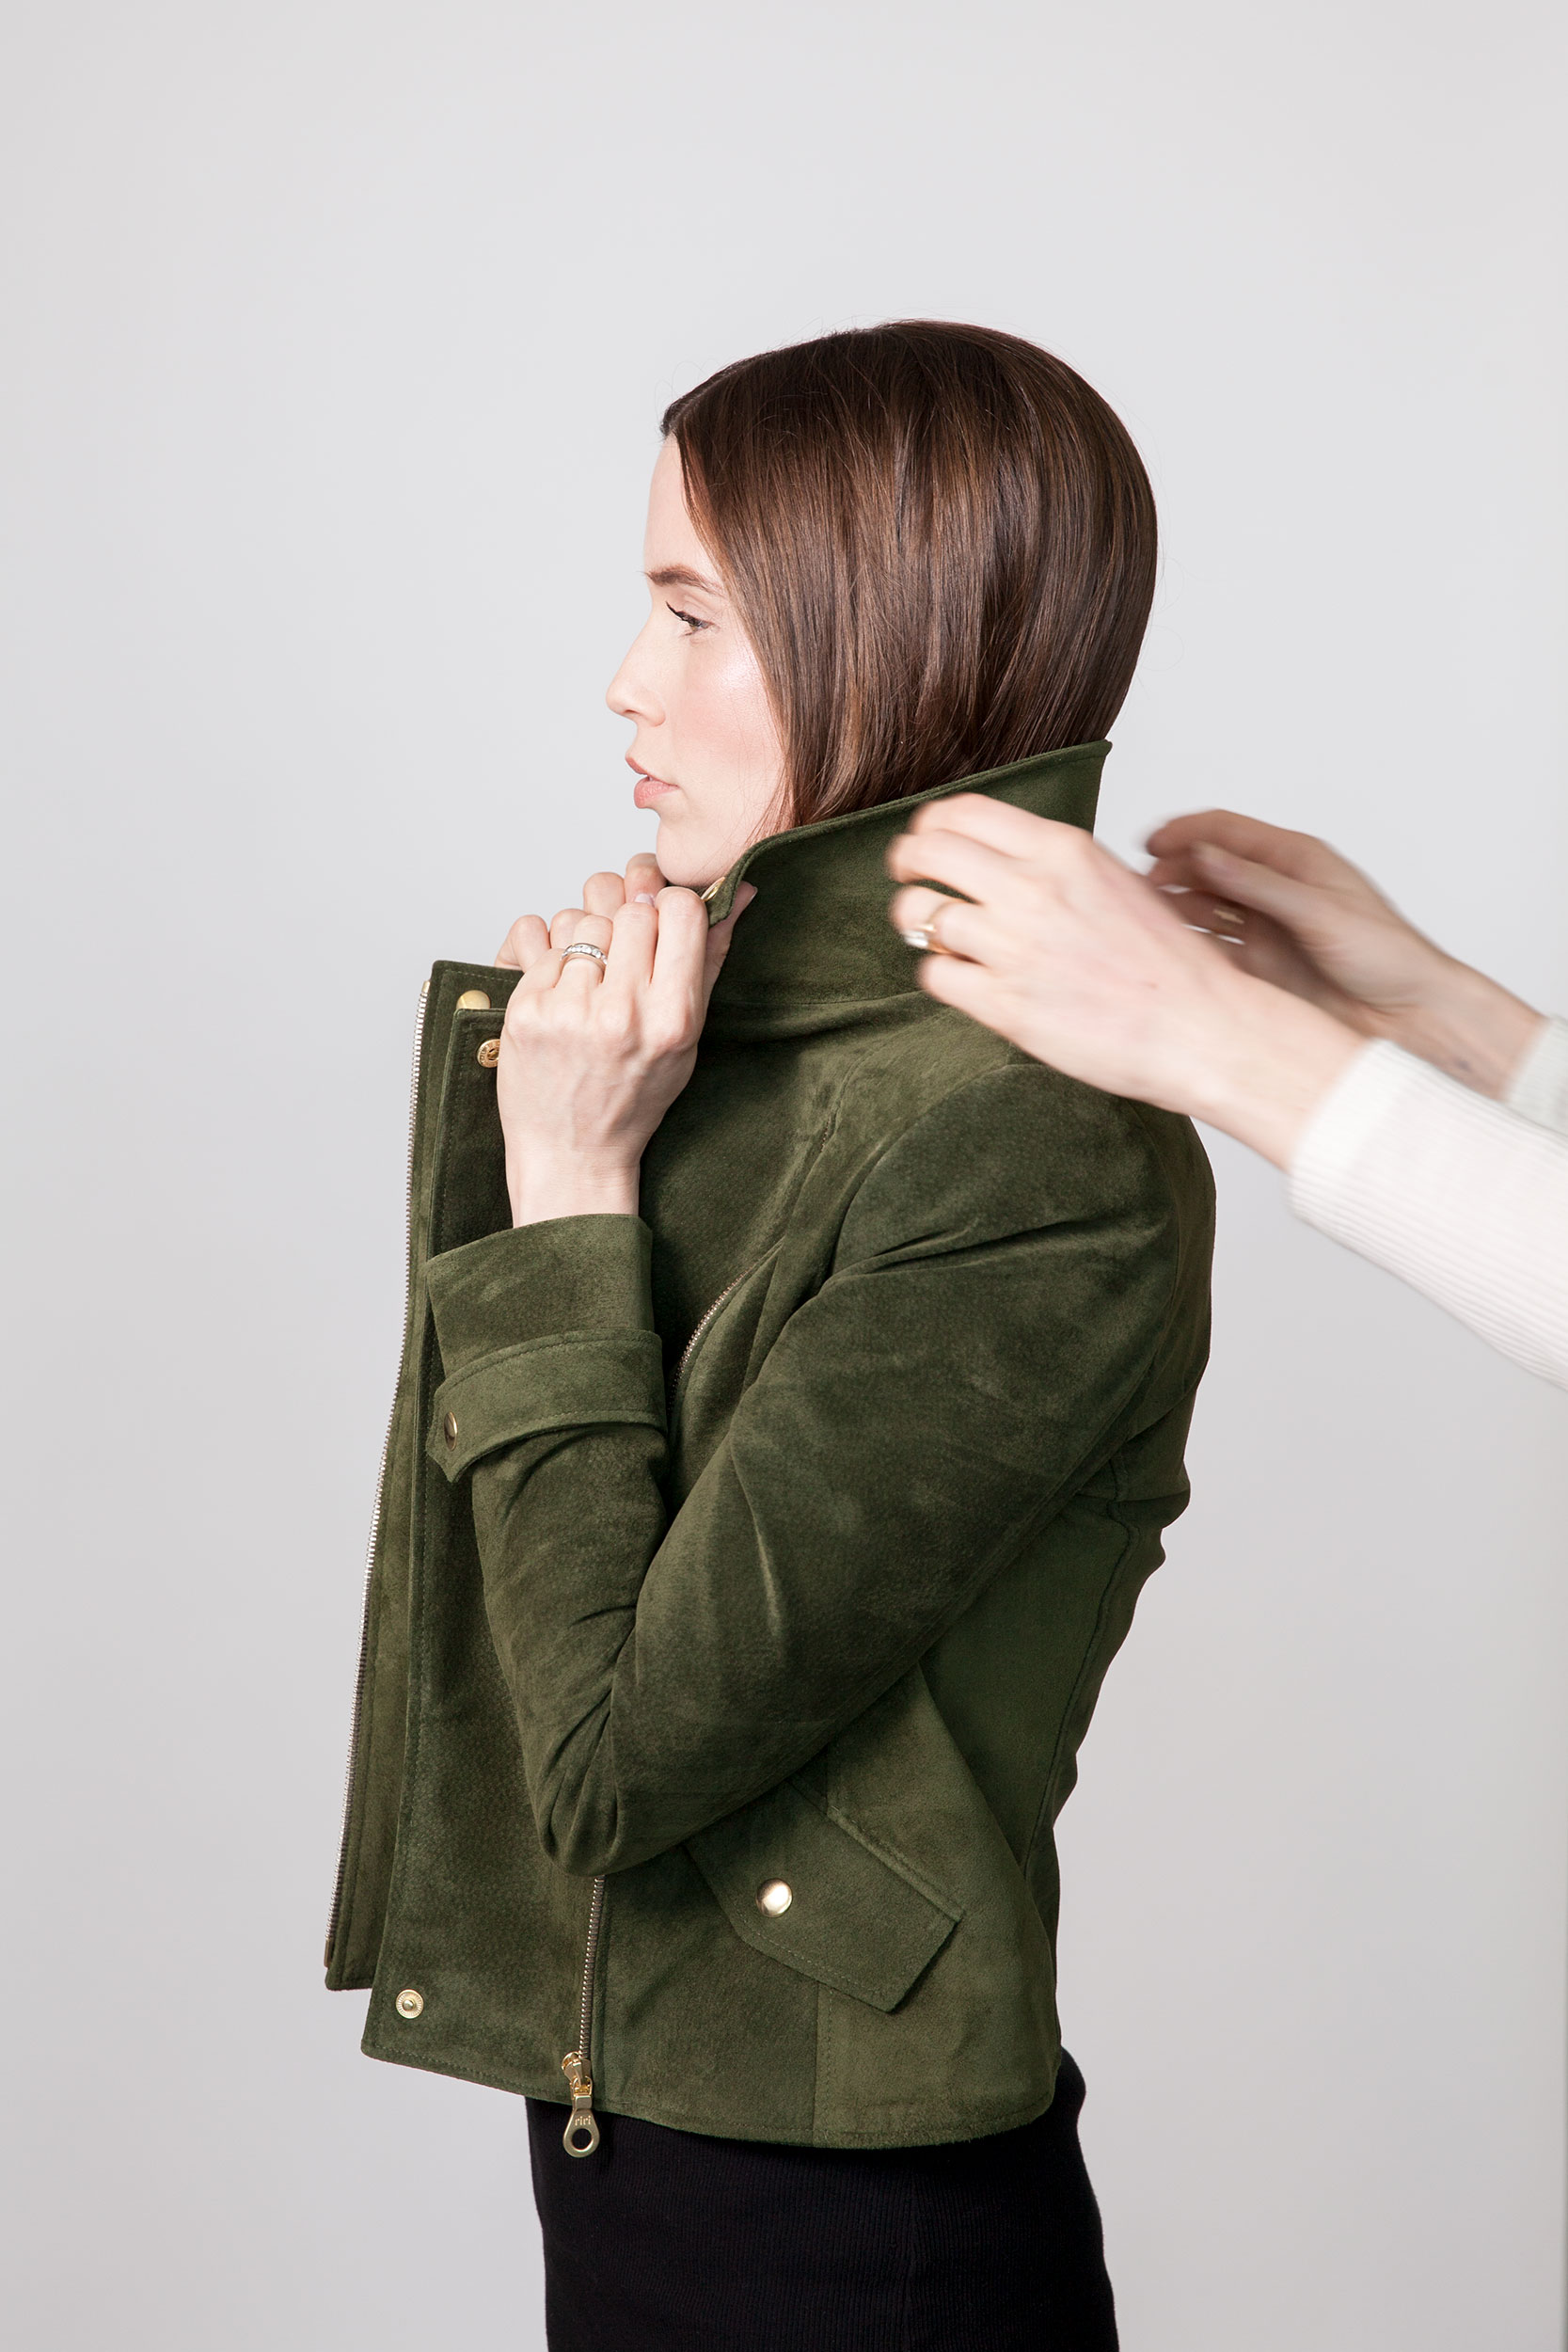 Sarah sneaks in for a collar adjustment